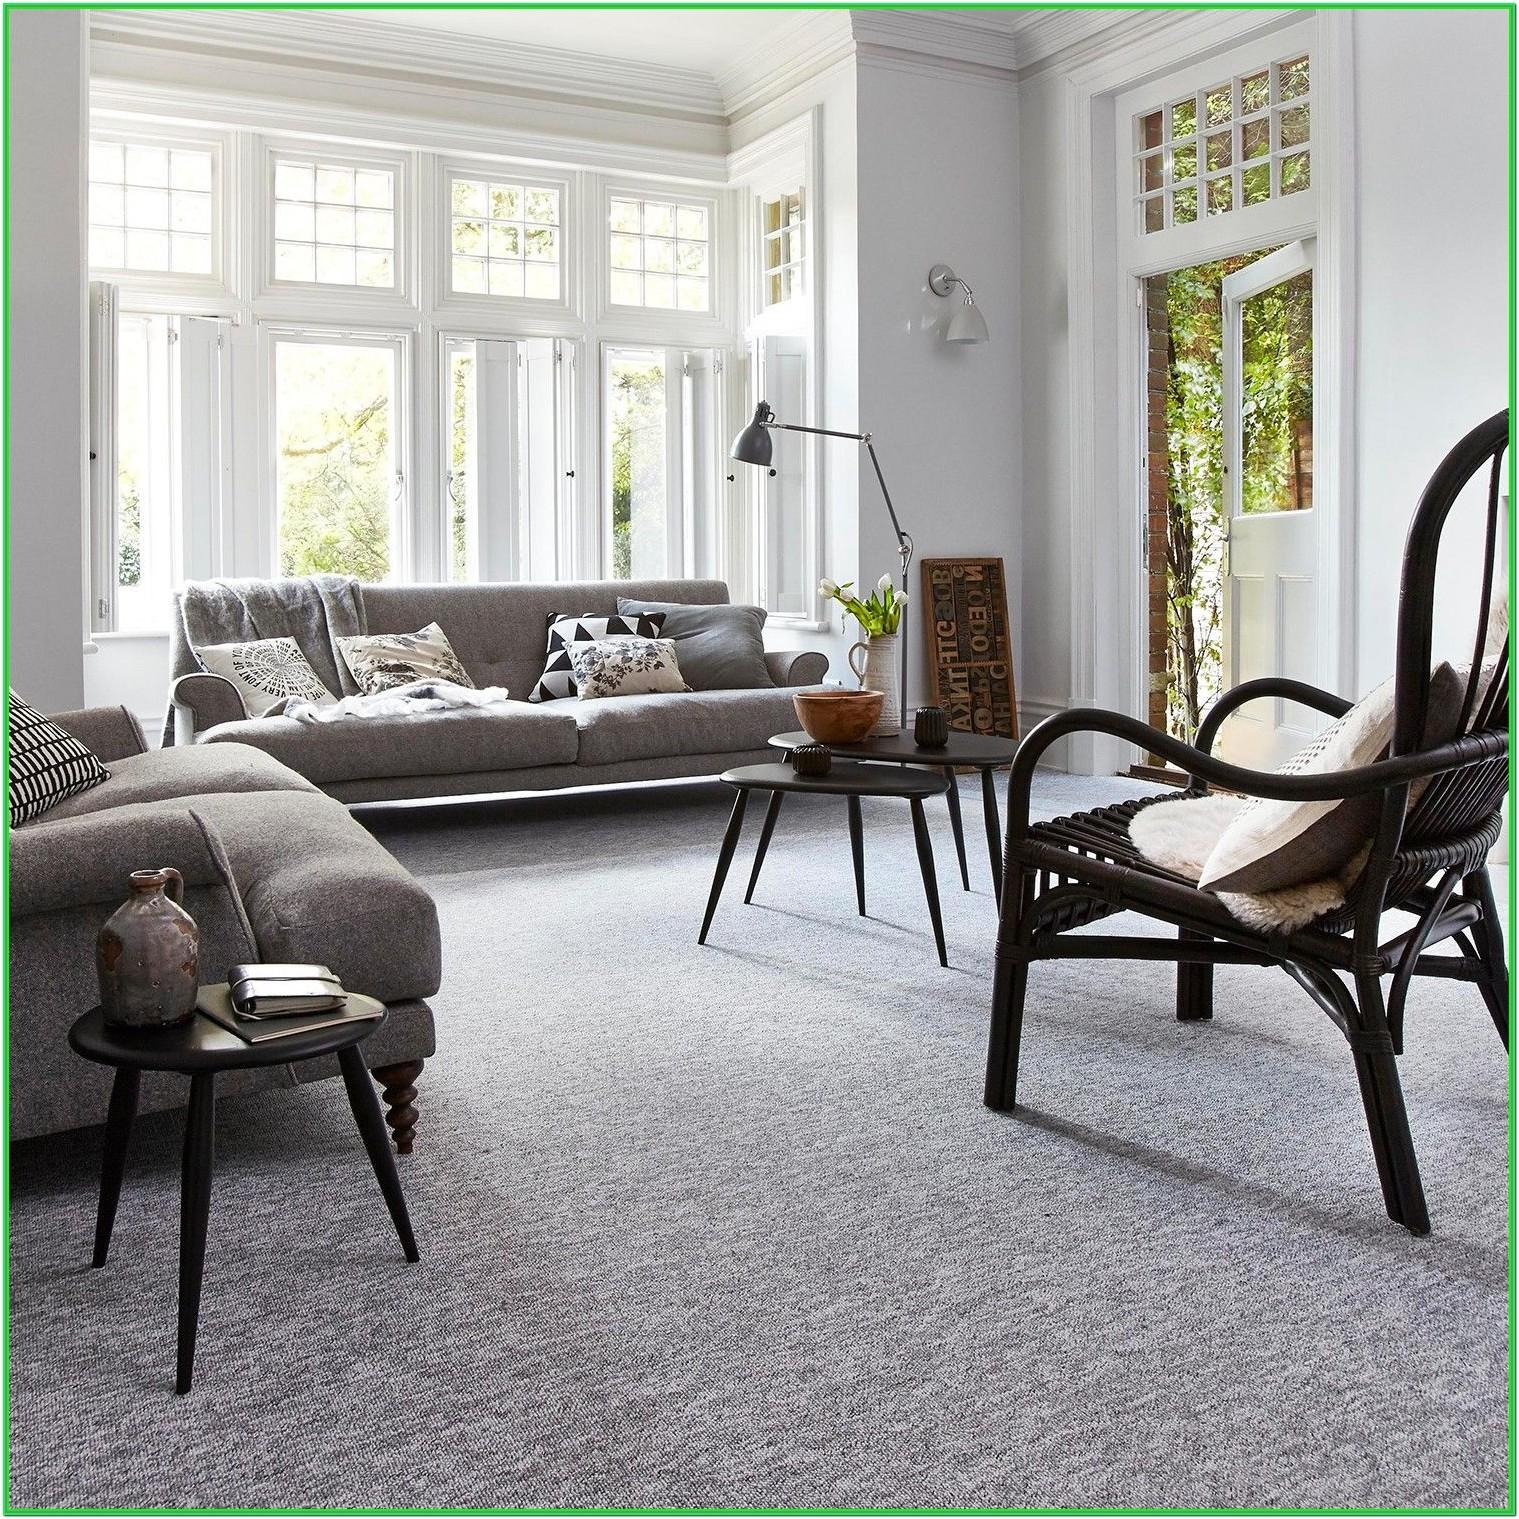 Living Room Wall To Wall Carpet Ideas